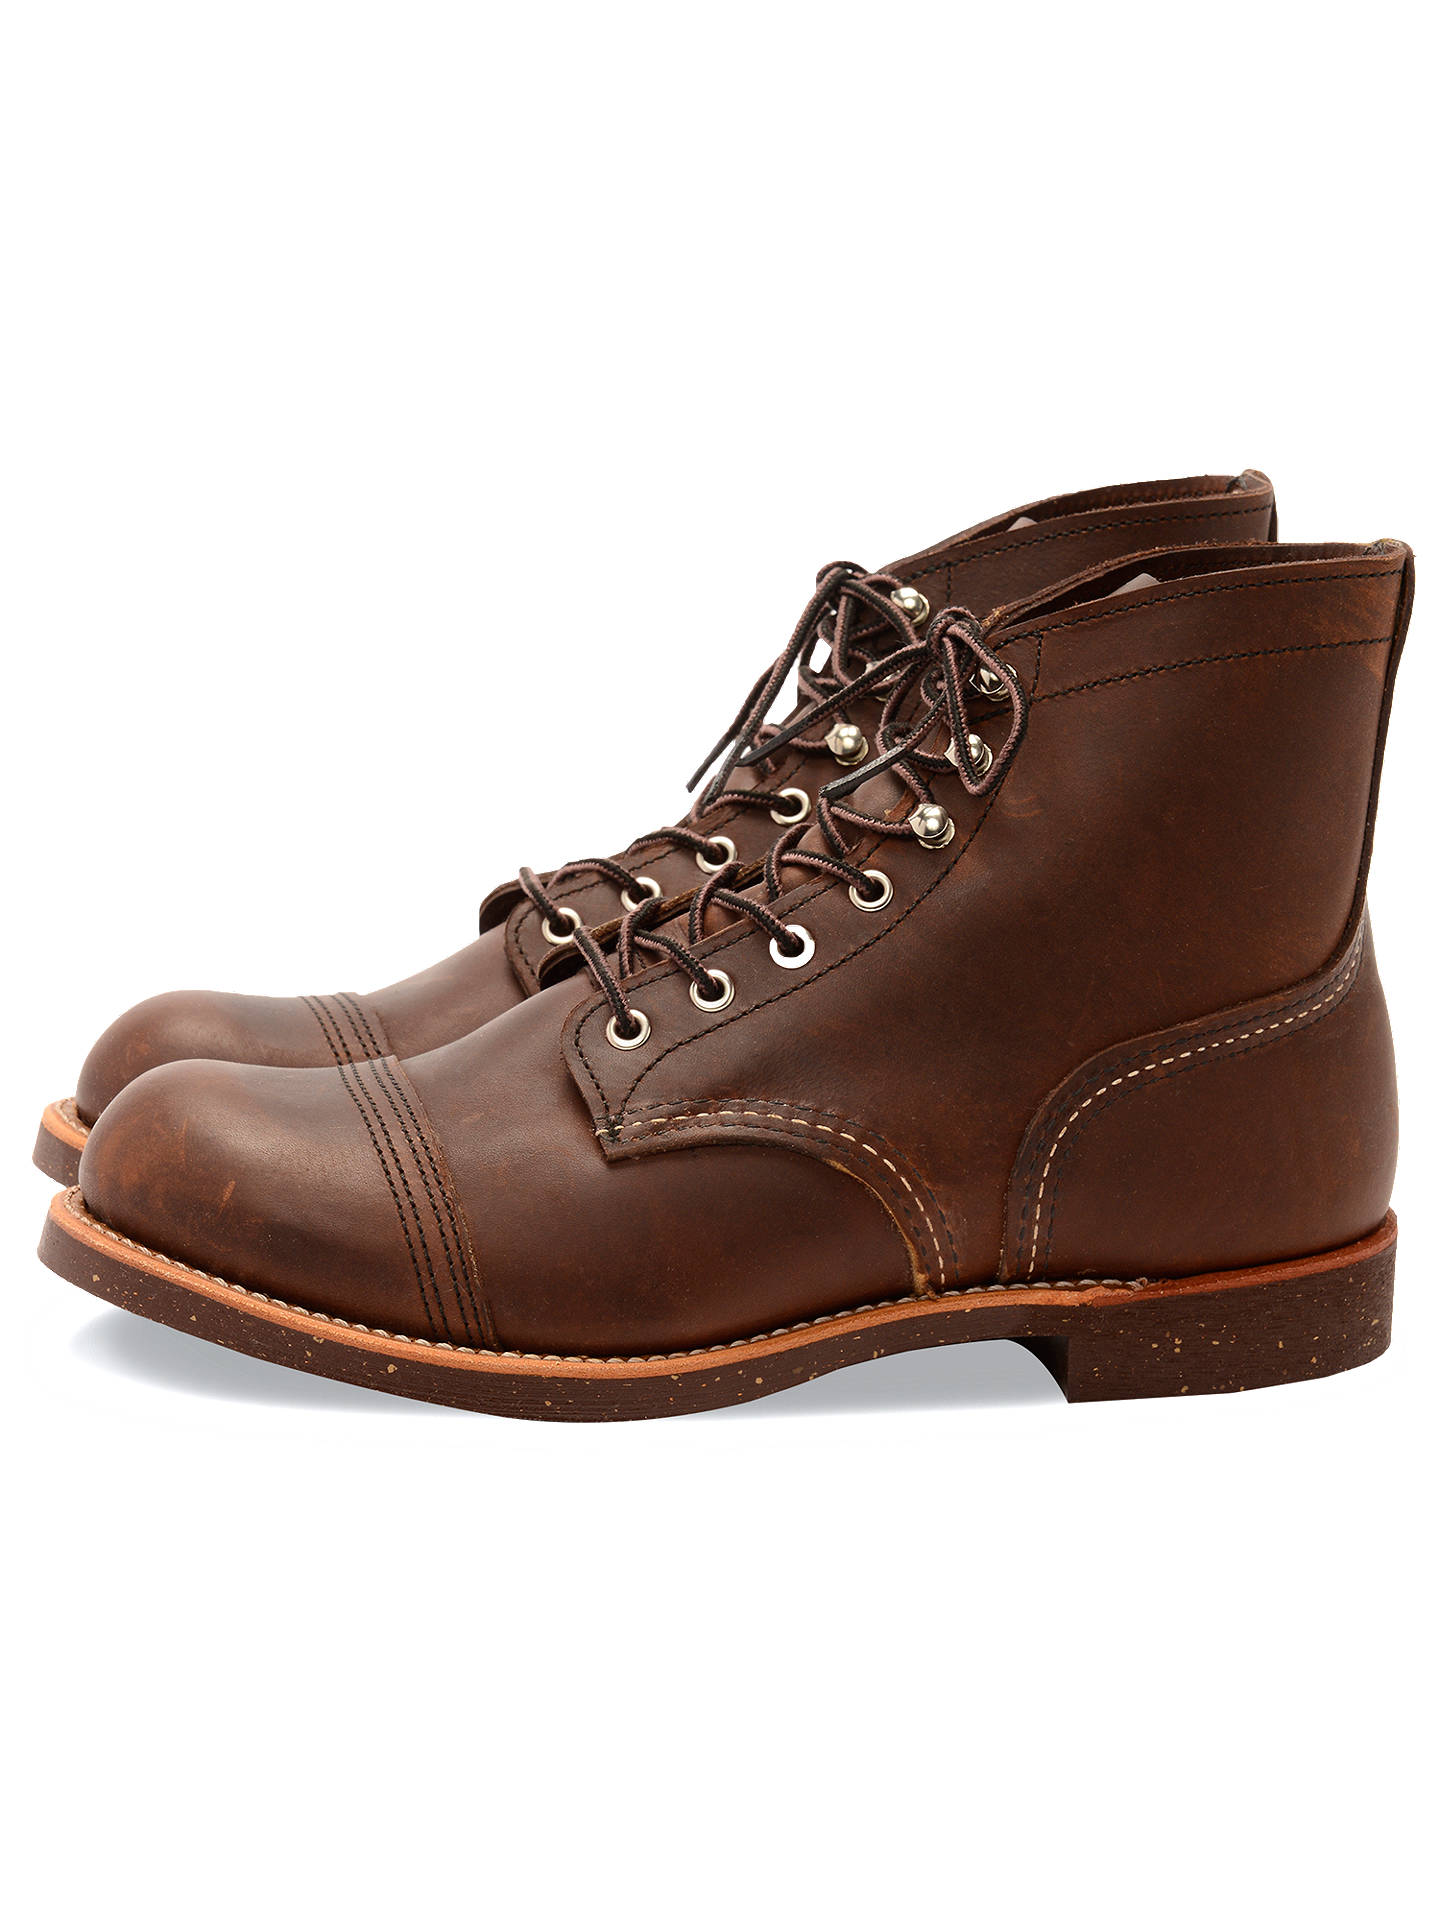 1522e89c49b Red Wing 8111 Iron Ranger Boots, Amber Harness